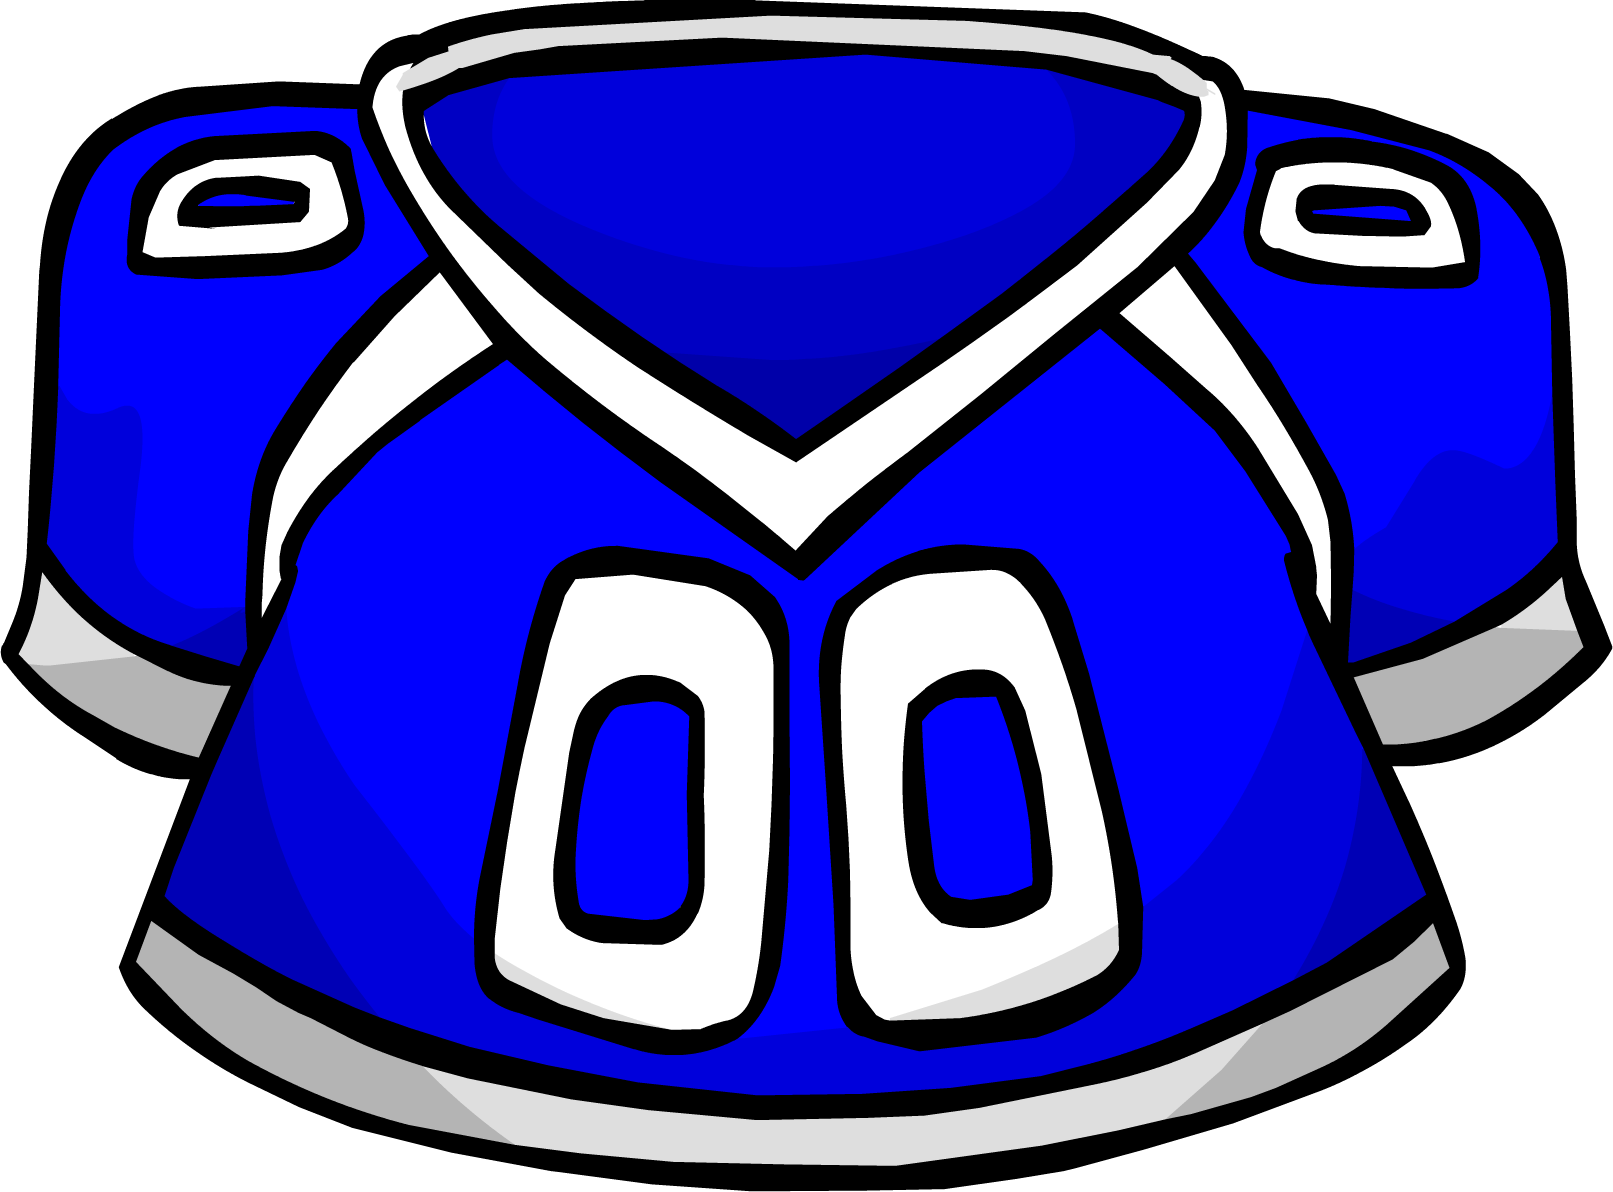 Reminder clipart uniform. Free sports jersey cliparts